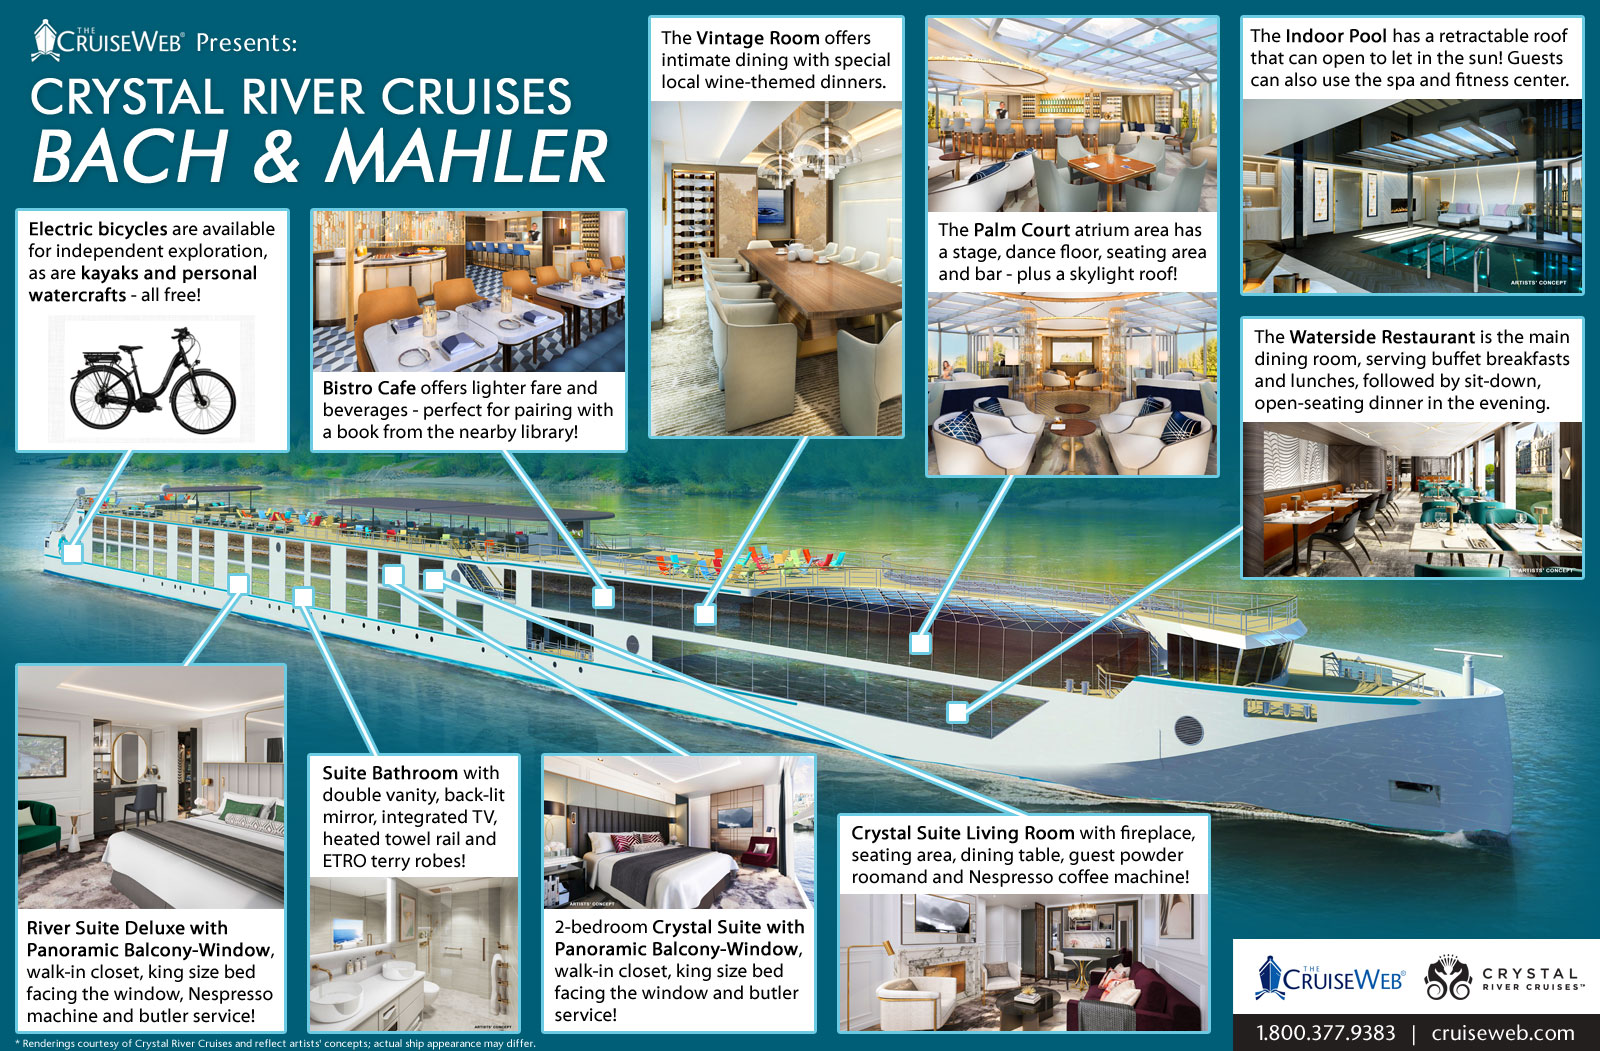 Crystal River Cruises' Crystal Mahler: An Infographic